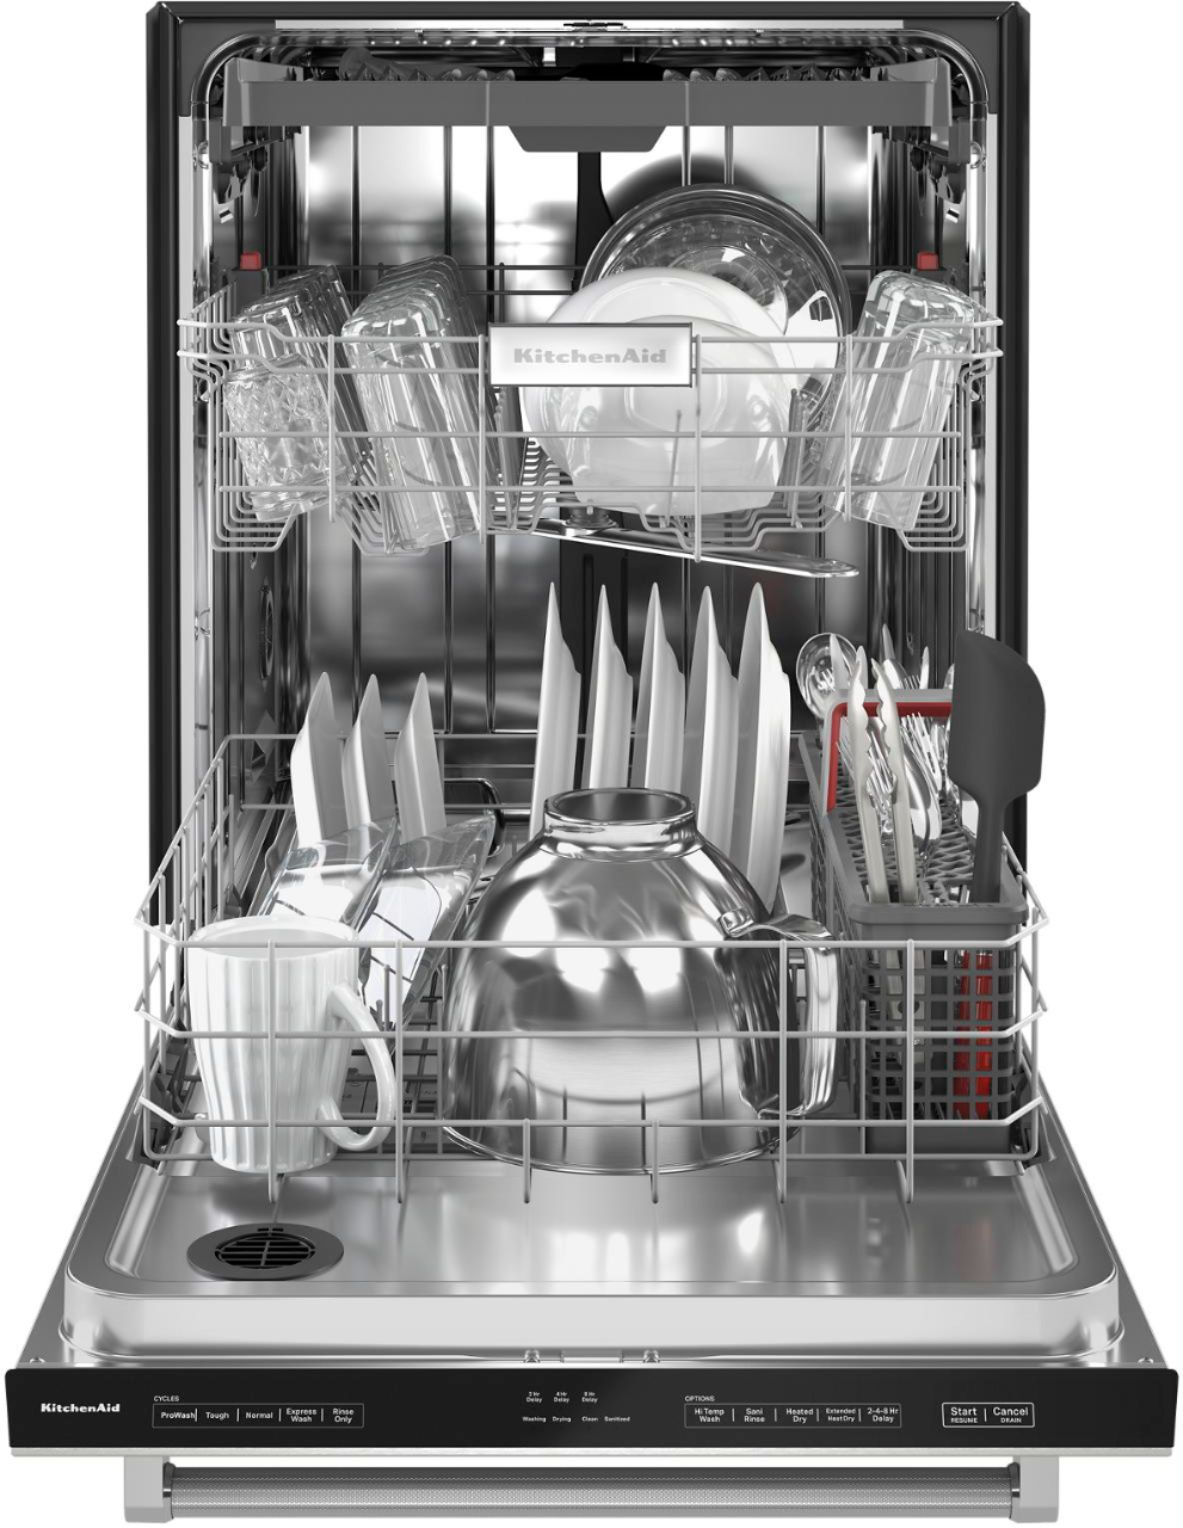 kitchenaid 24 top control built in dishwasher with stainless steel tub printshield finish 3rd rack 39 dba stainless steel with printshield